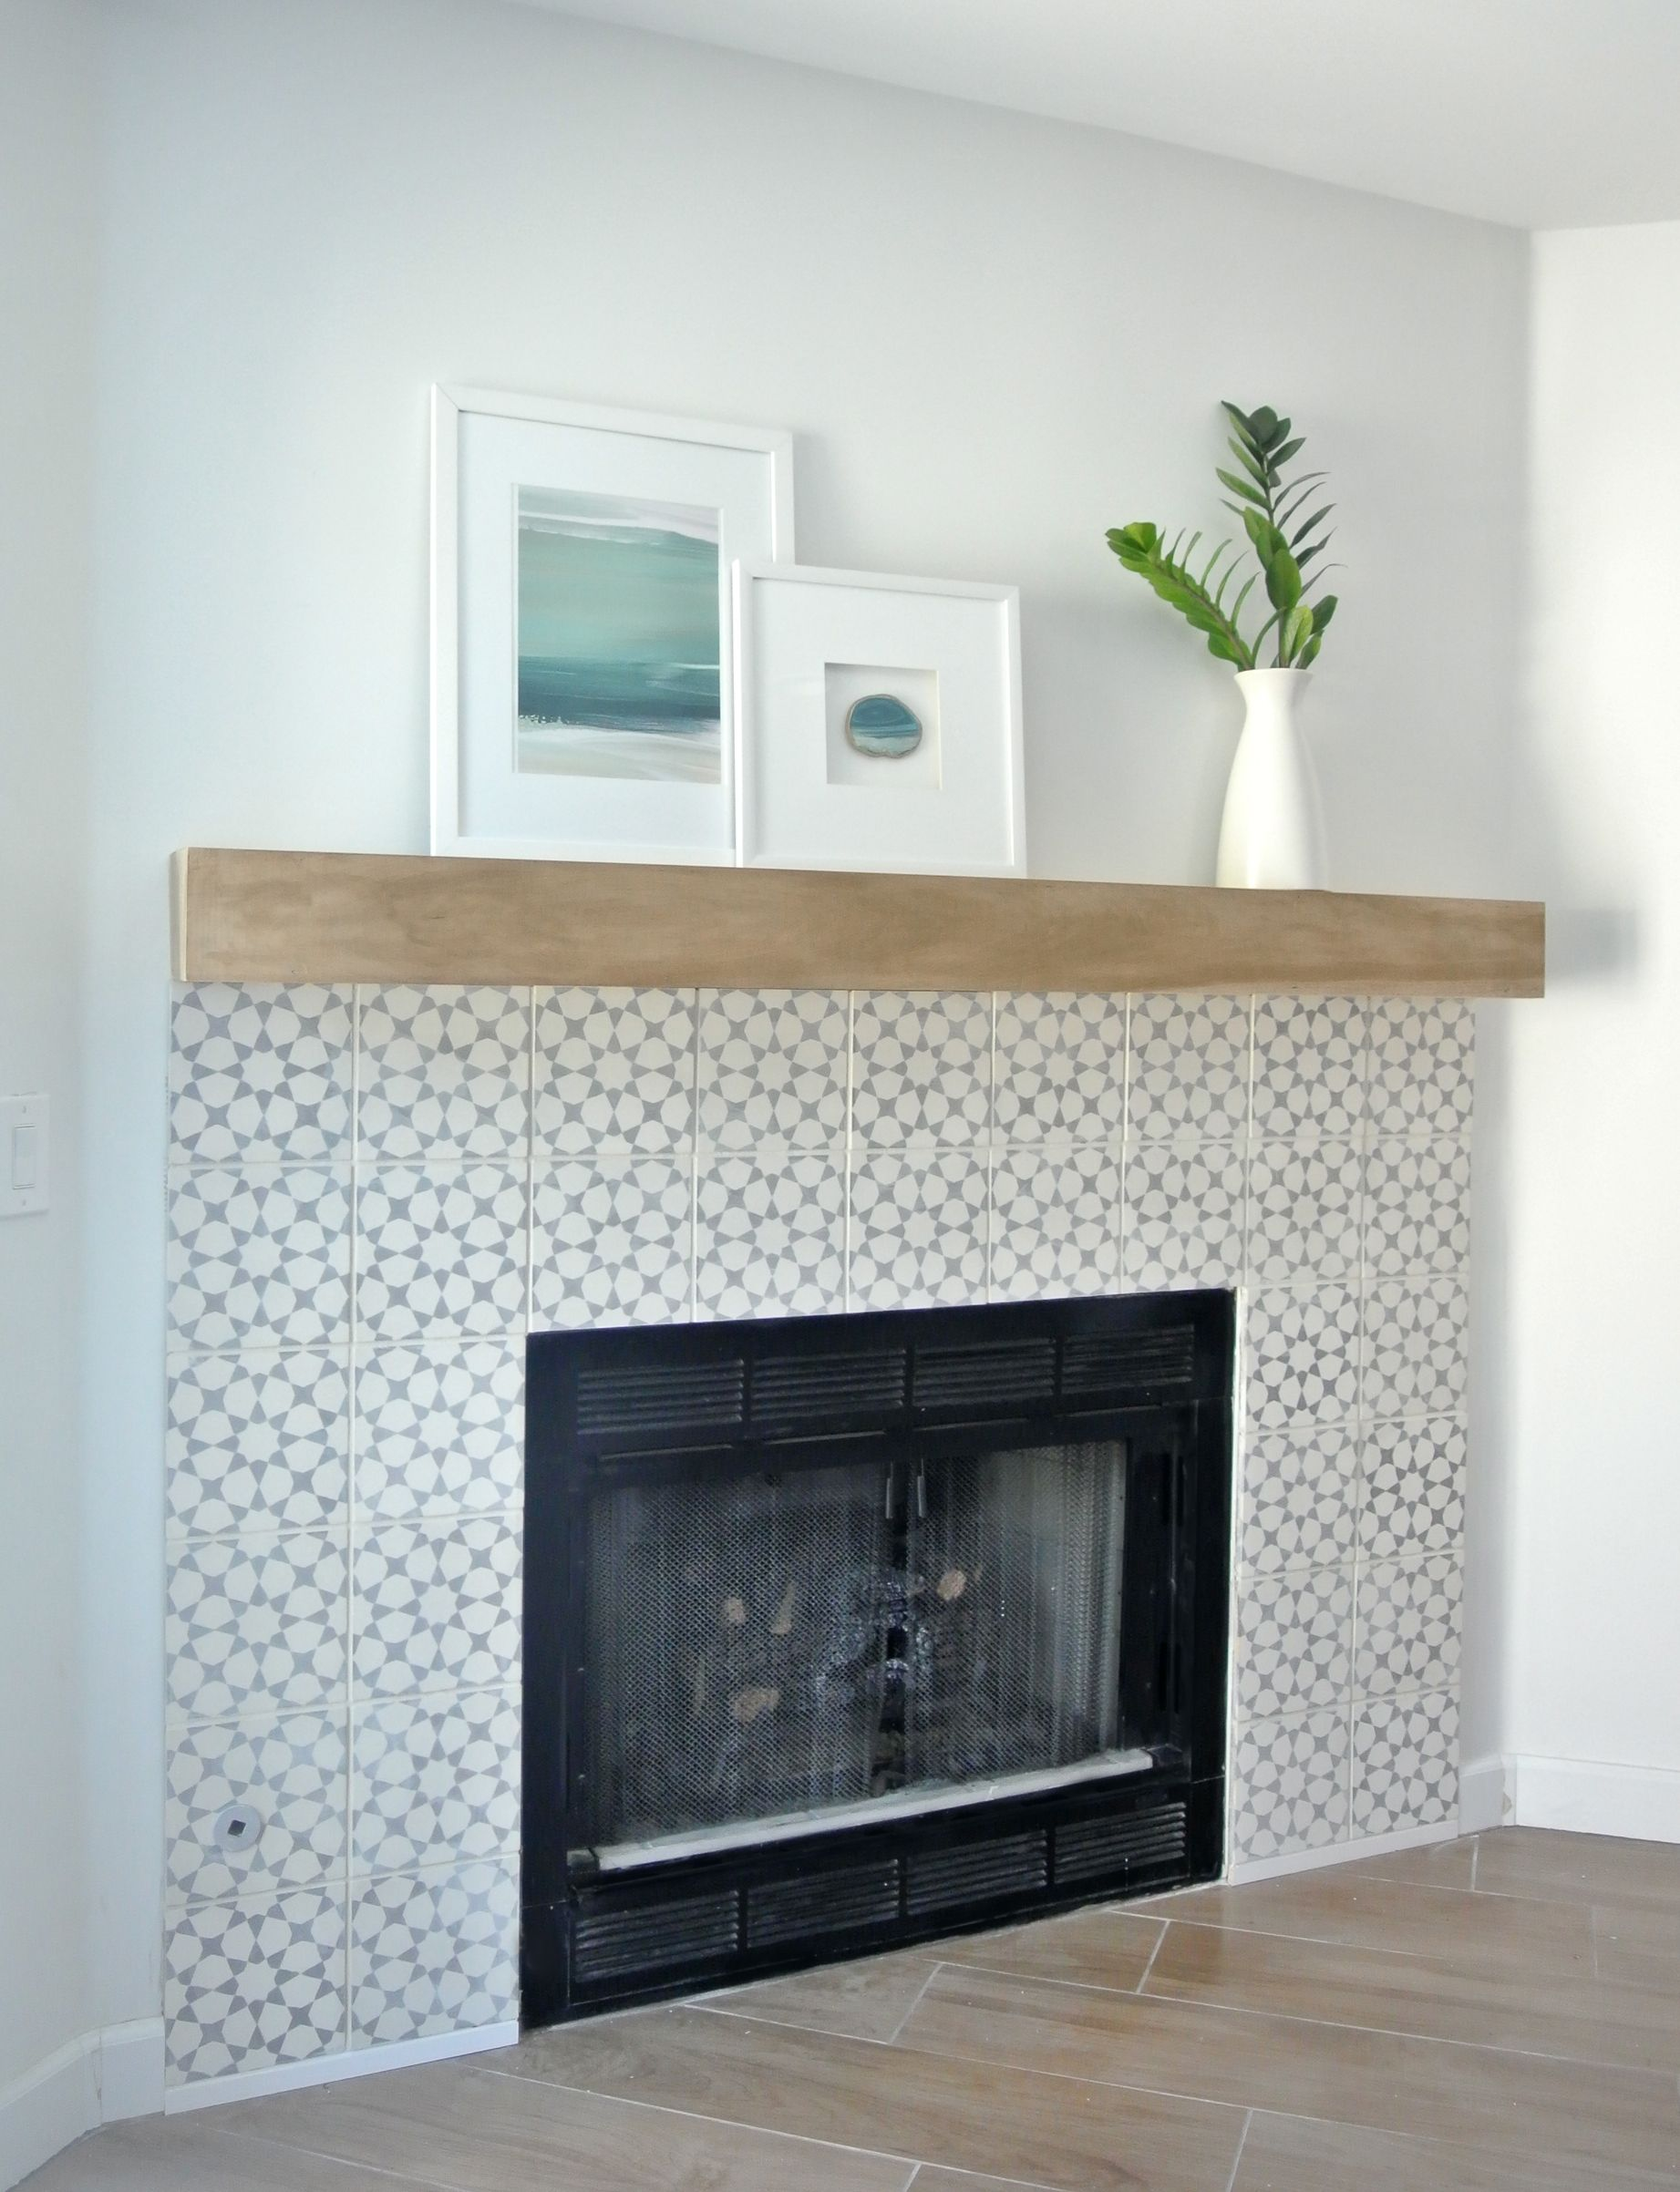 surround a during f area of utilized holiday style tile fireplace arguably stone most and stacked shocking image home uncategorized the